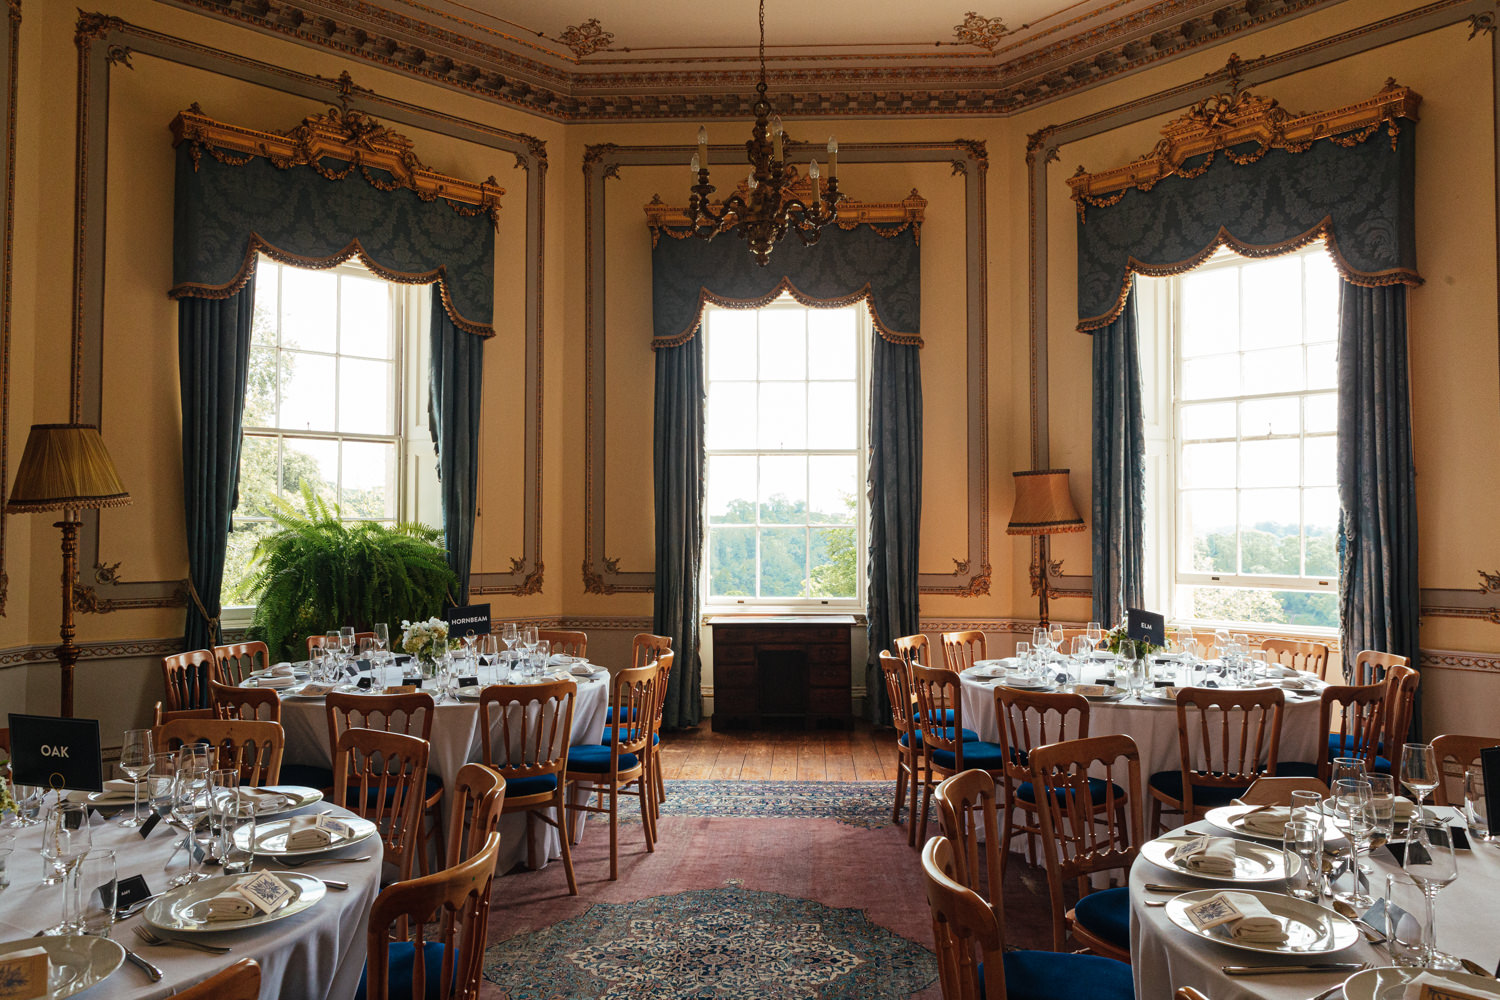 sharpham house, dining room, dining at sharpham house, wedding at sharpham house, wedding reception, devon wedding, country wedding, sharpham gardens, wedding photography